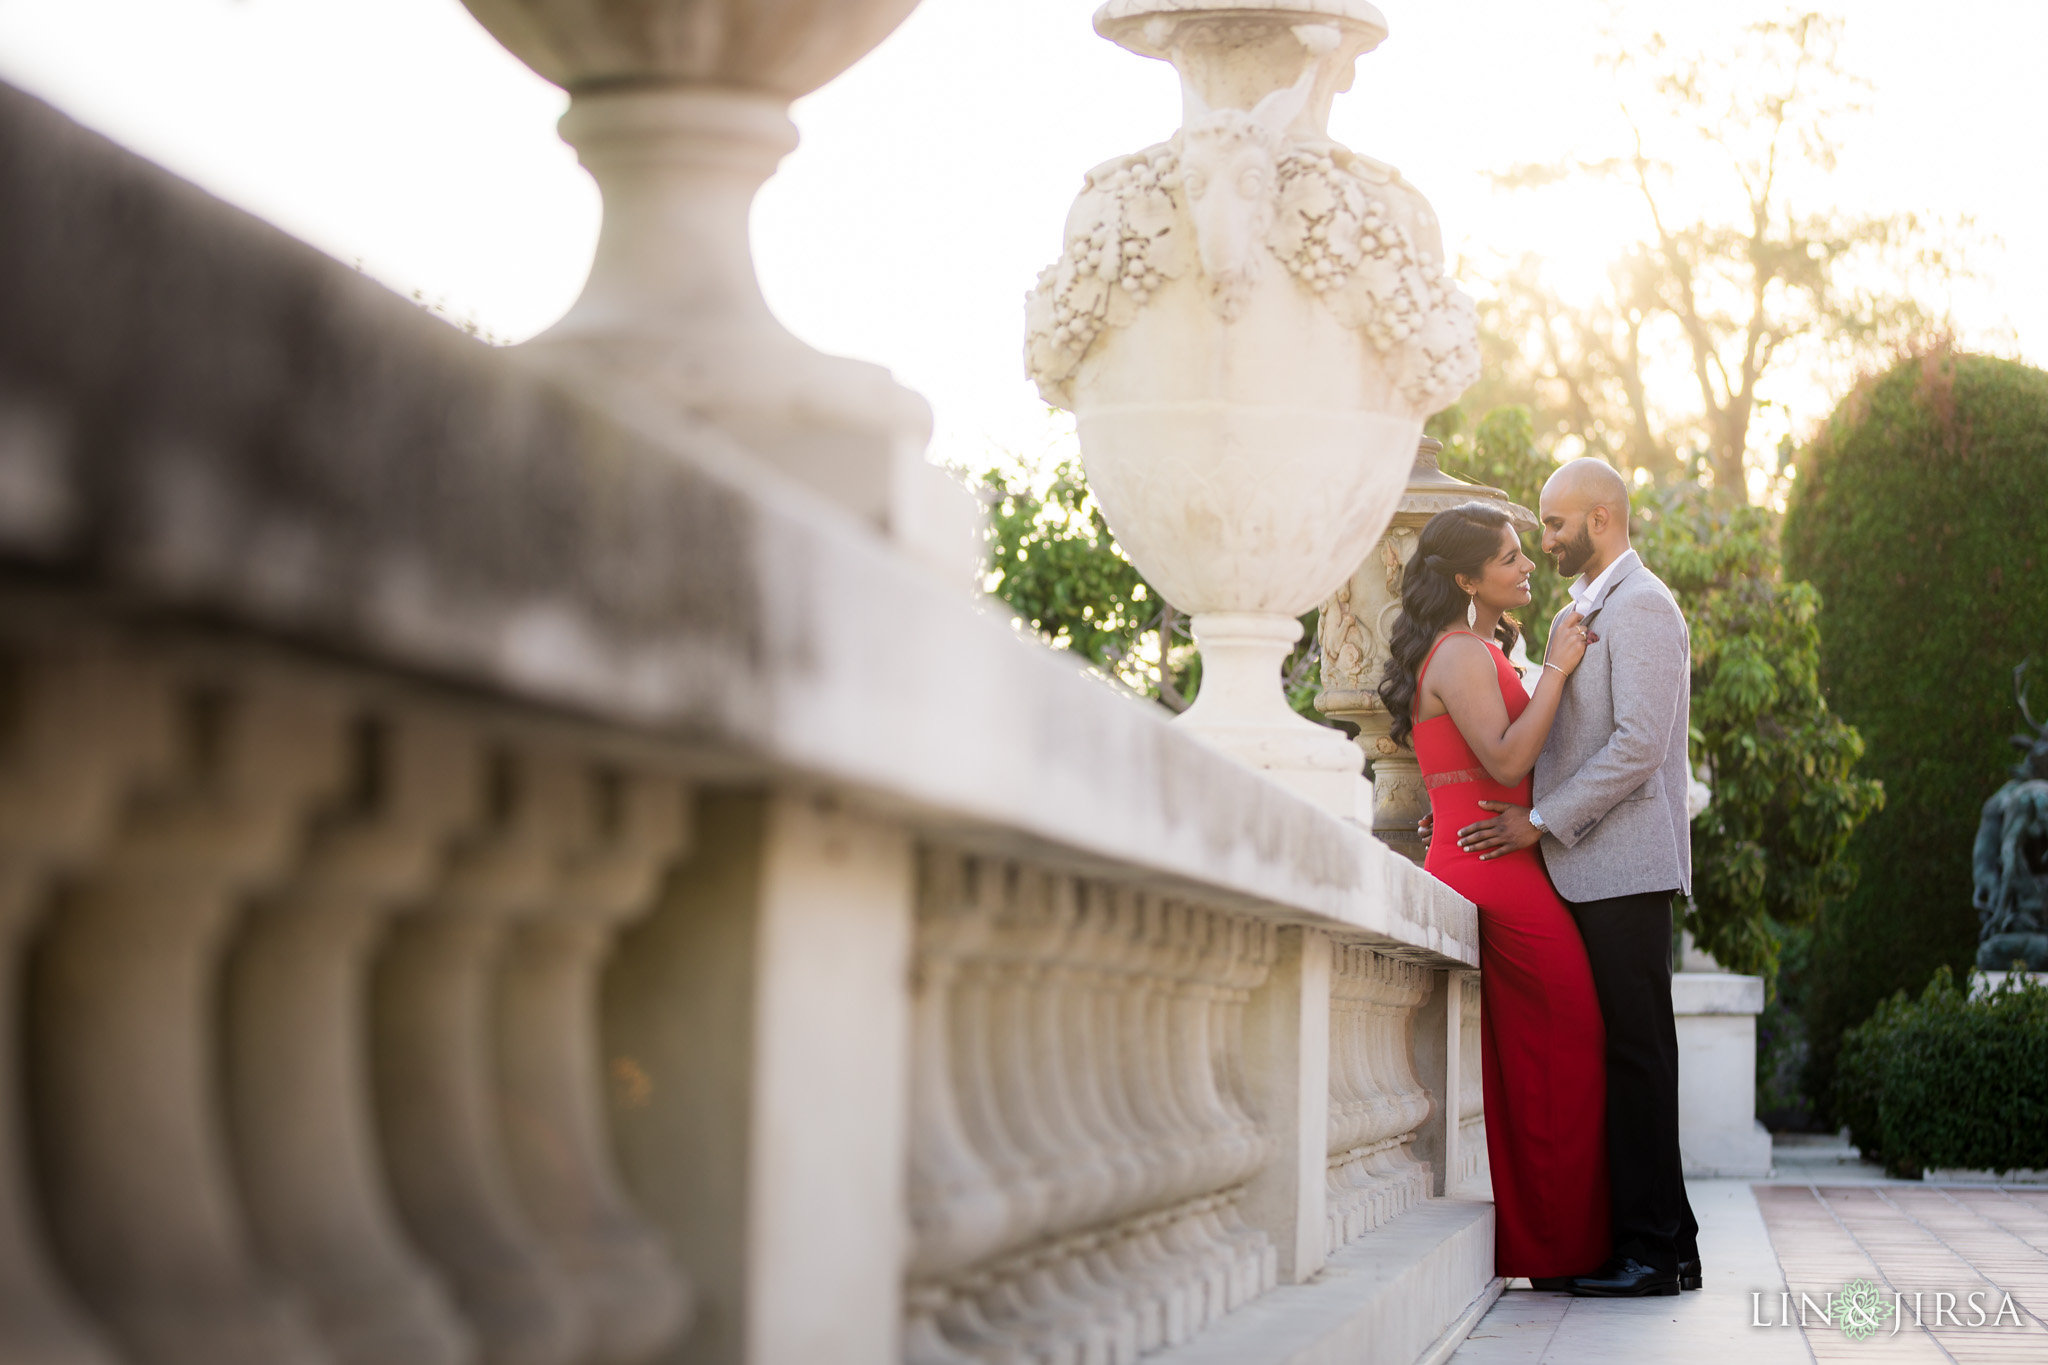 18-huntington-garden-engagement-photography